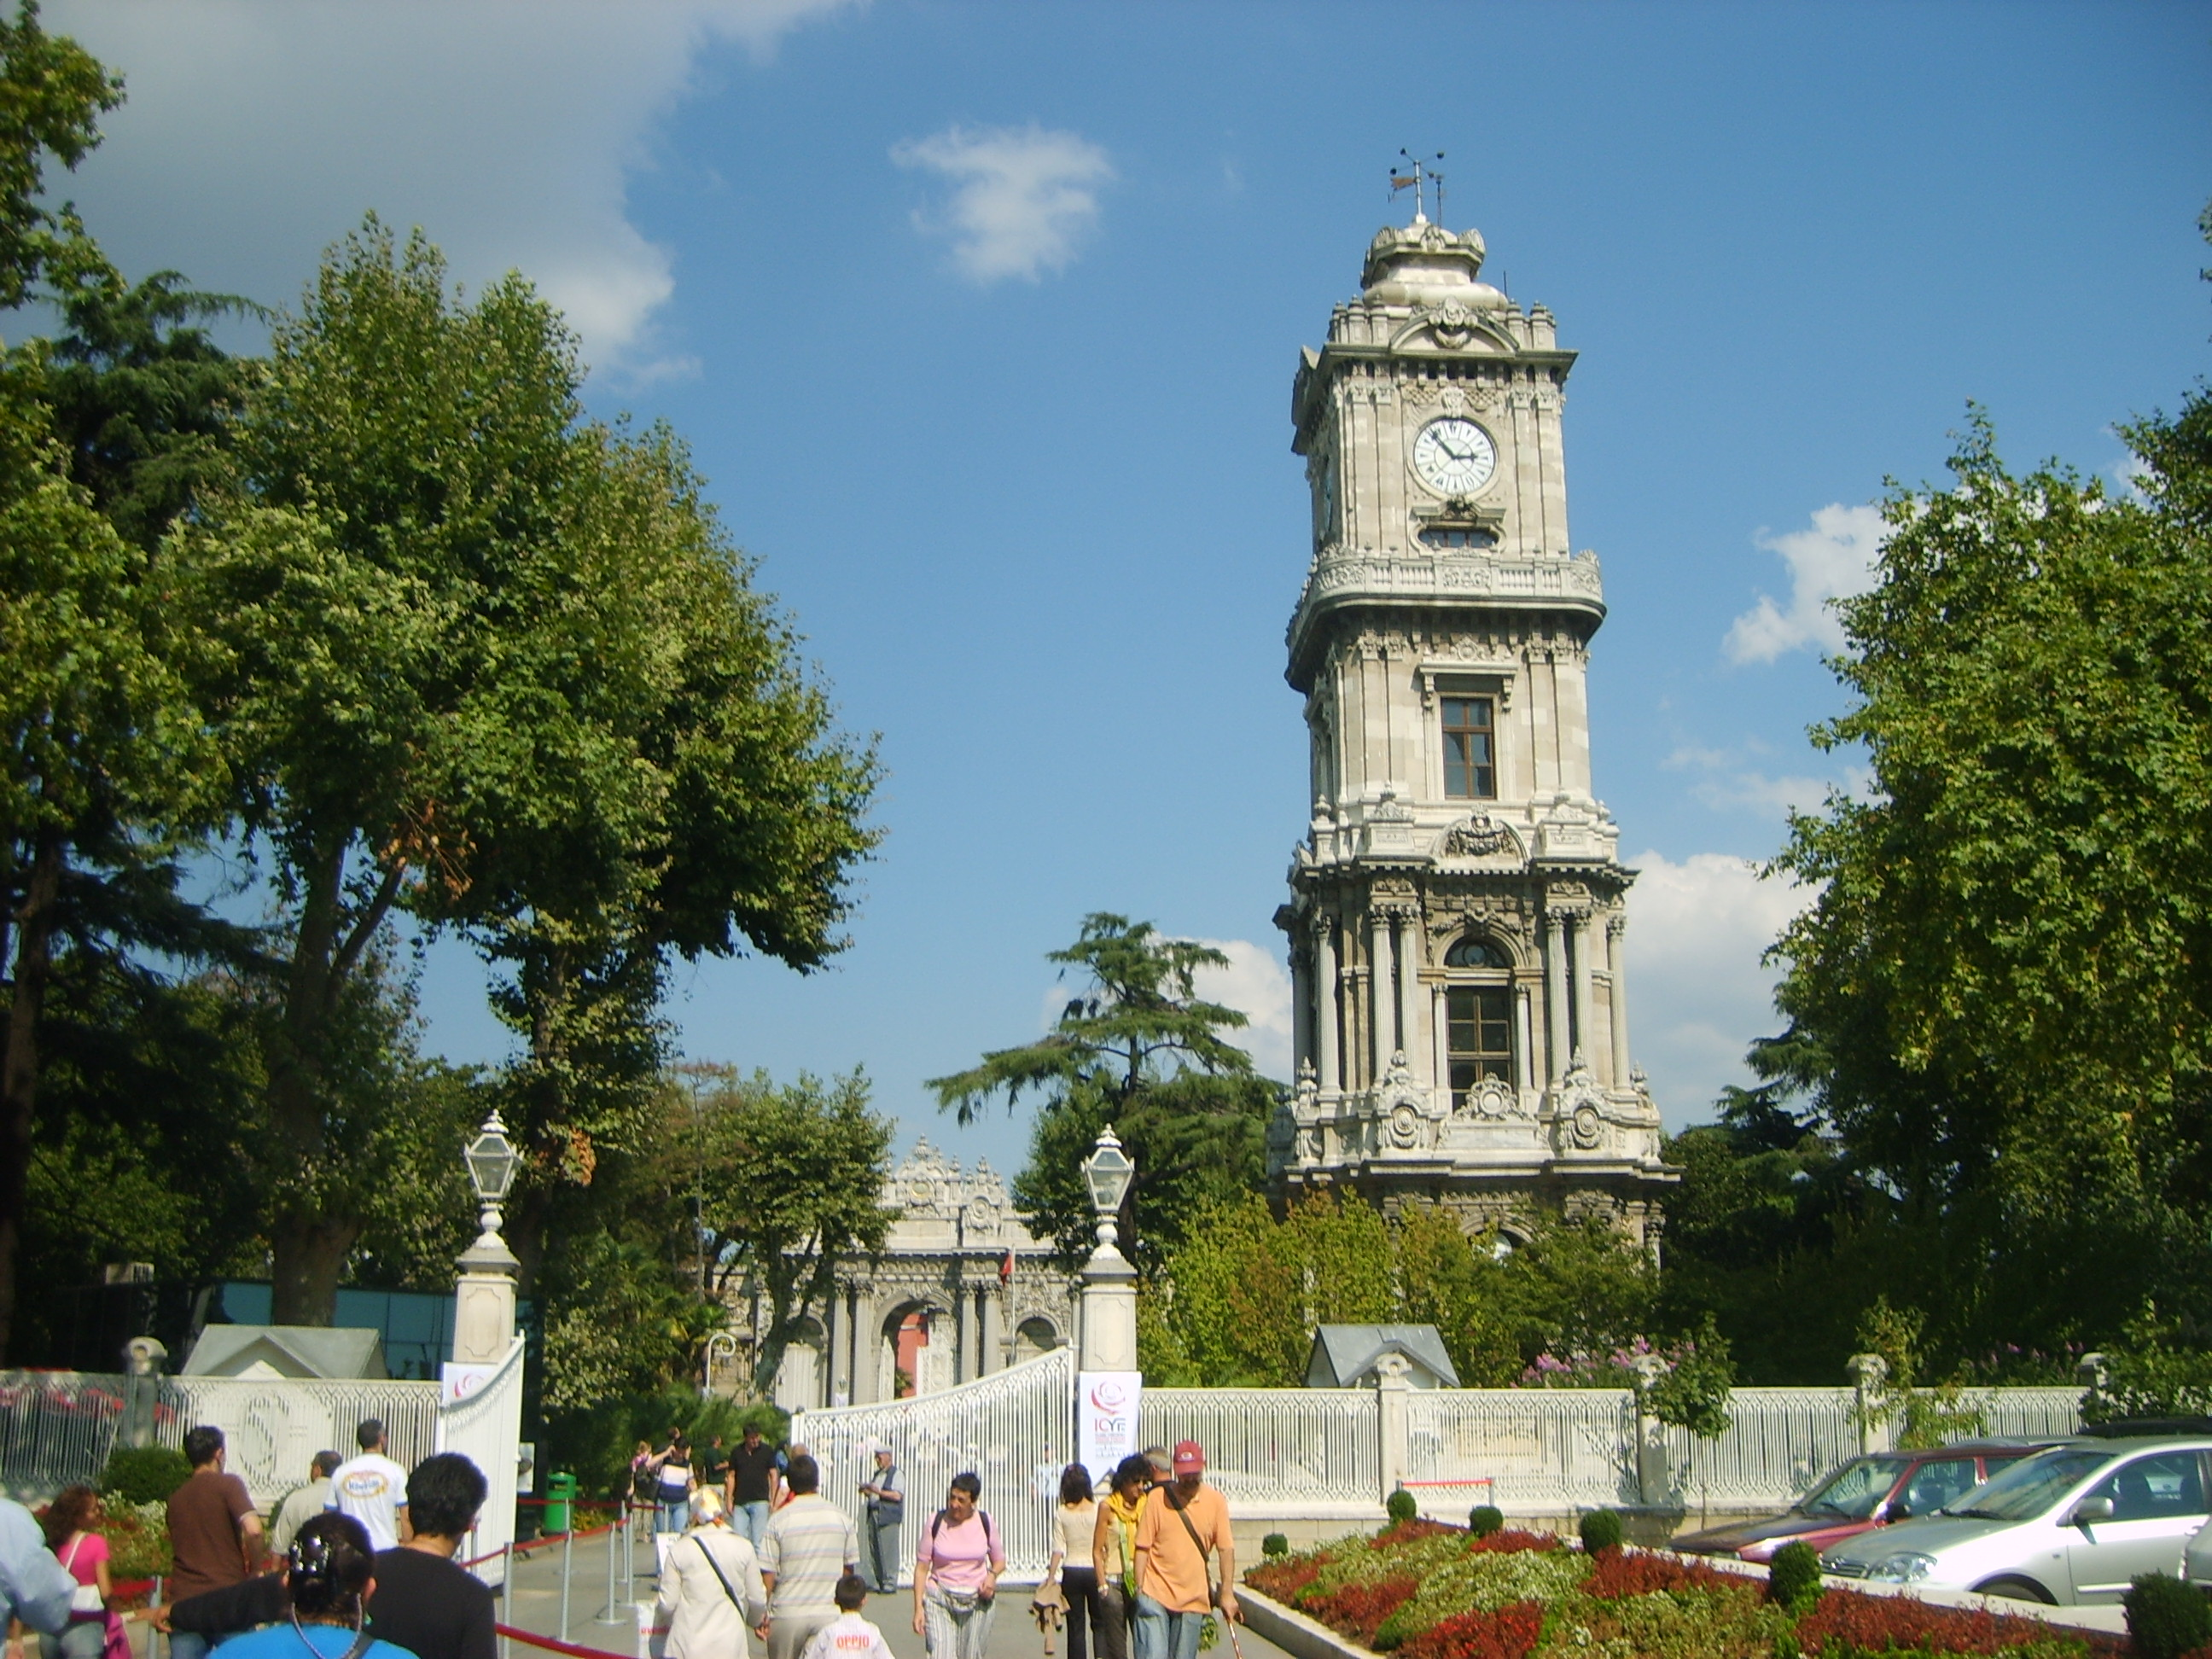 File:Dolmabahce clock tower.jpg - Wikimedia Commons